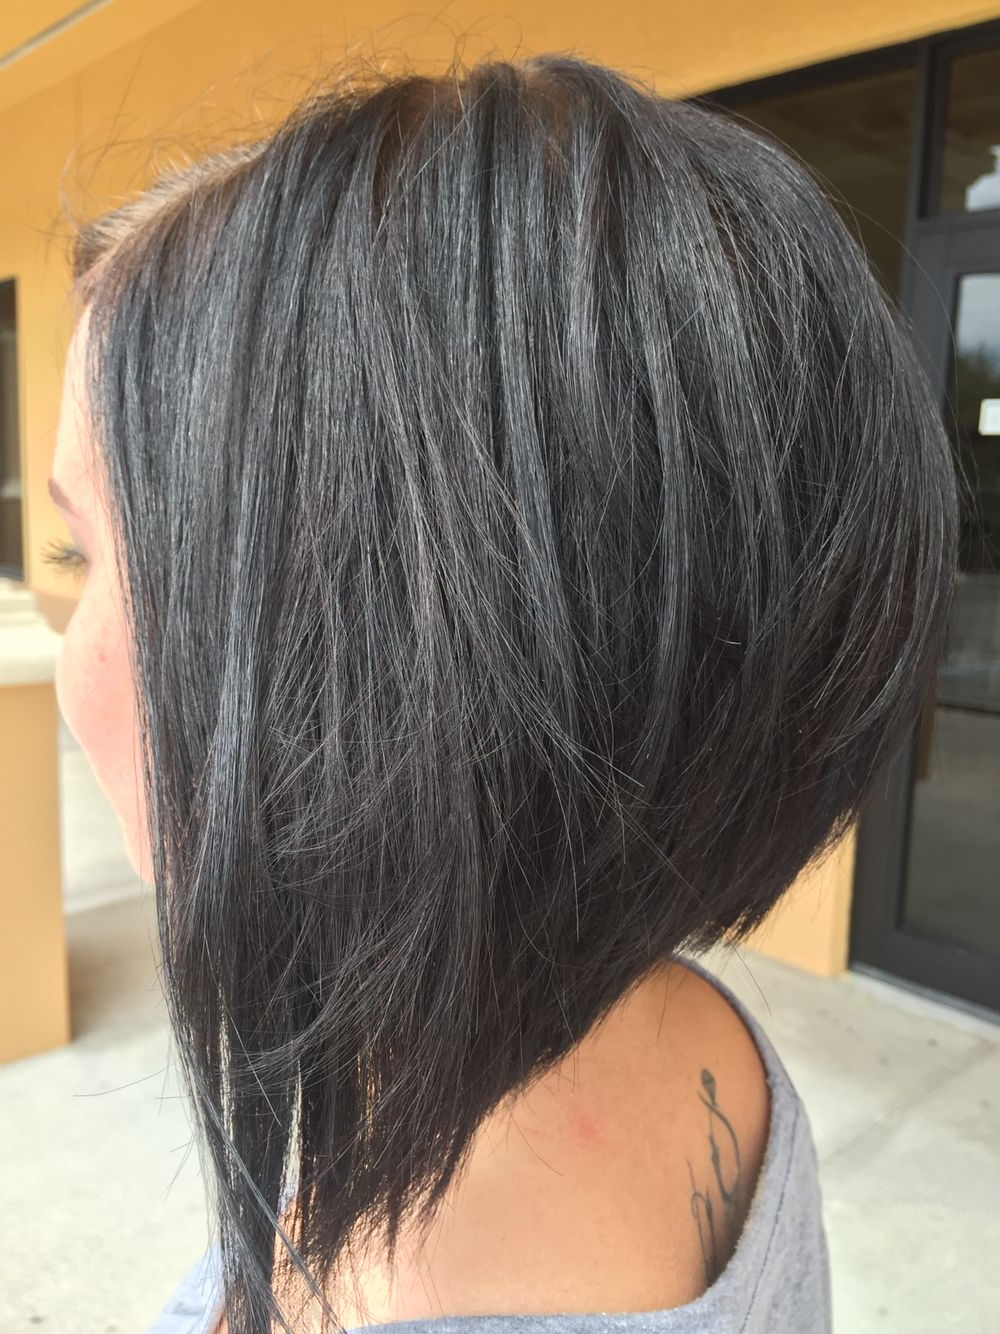 Edgy Bob | Hair In 2018 | Pinterest | Hair, Hair Styles And Hair Cuts With Edgy Pixie Haircuts With Long Angled Layers (View 15 of 20)